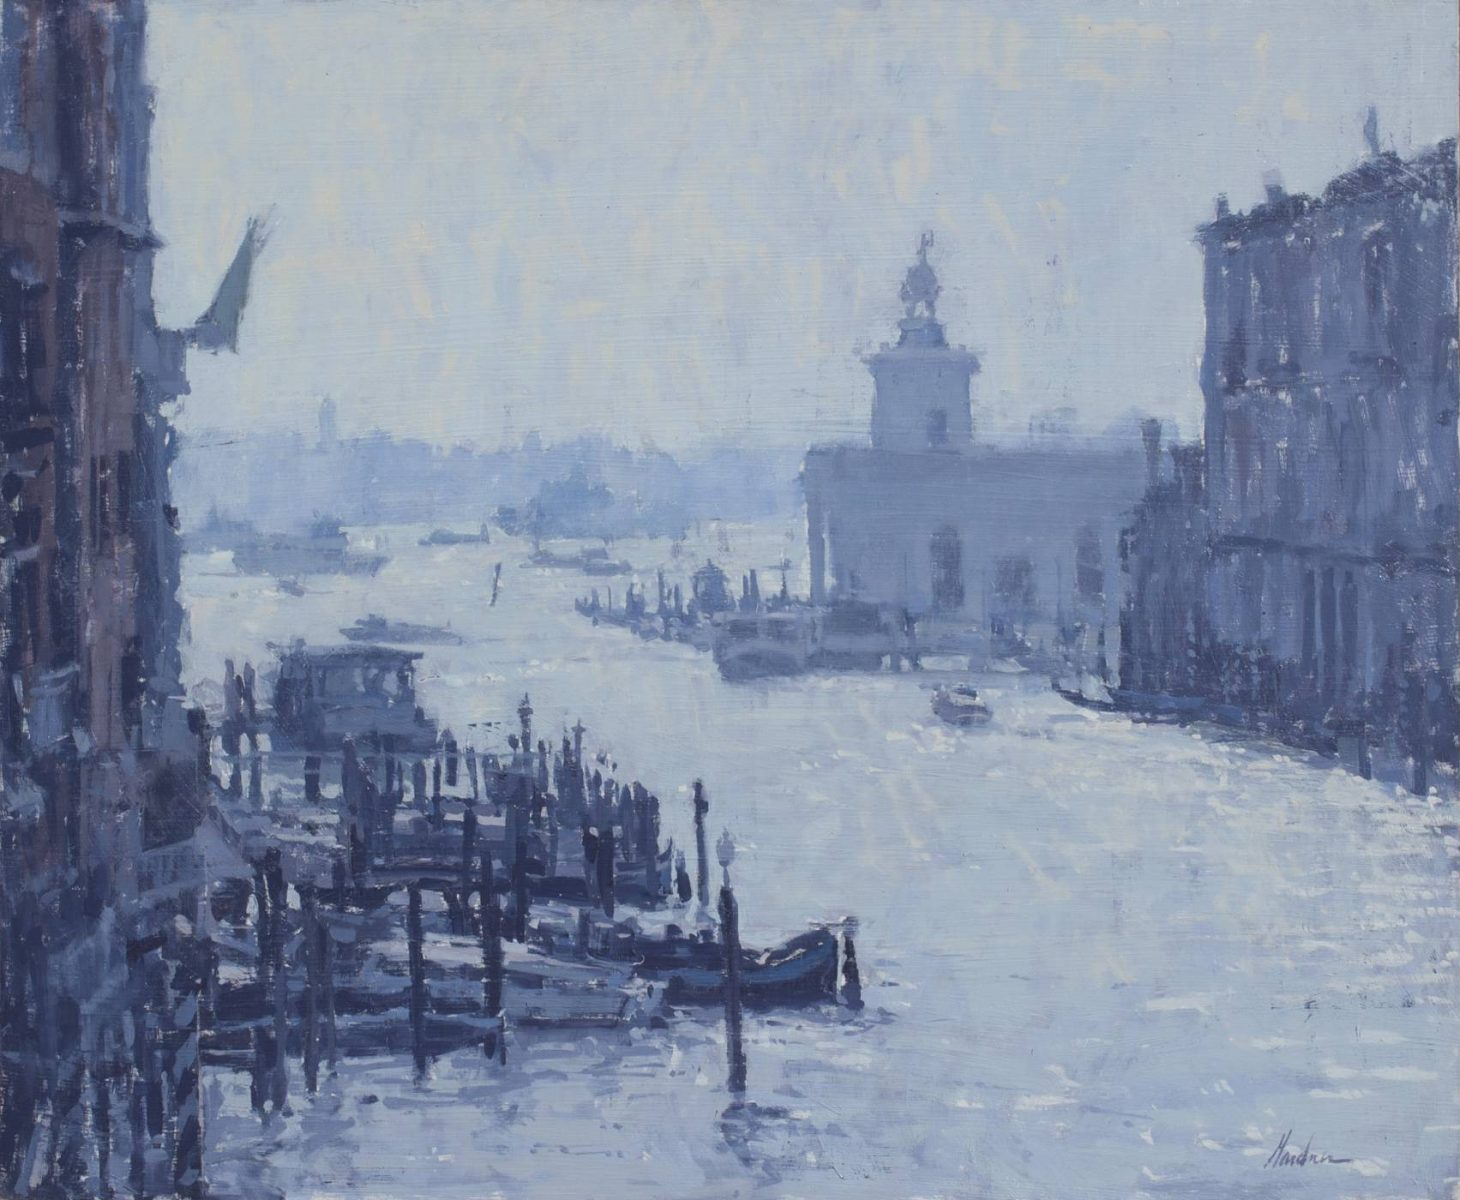 Grand Canal, Venice scene landscape painting by artist Frank Gardner